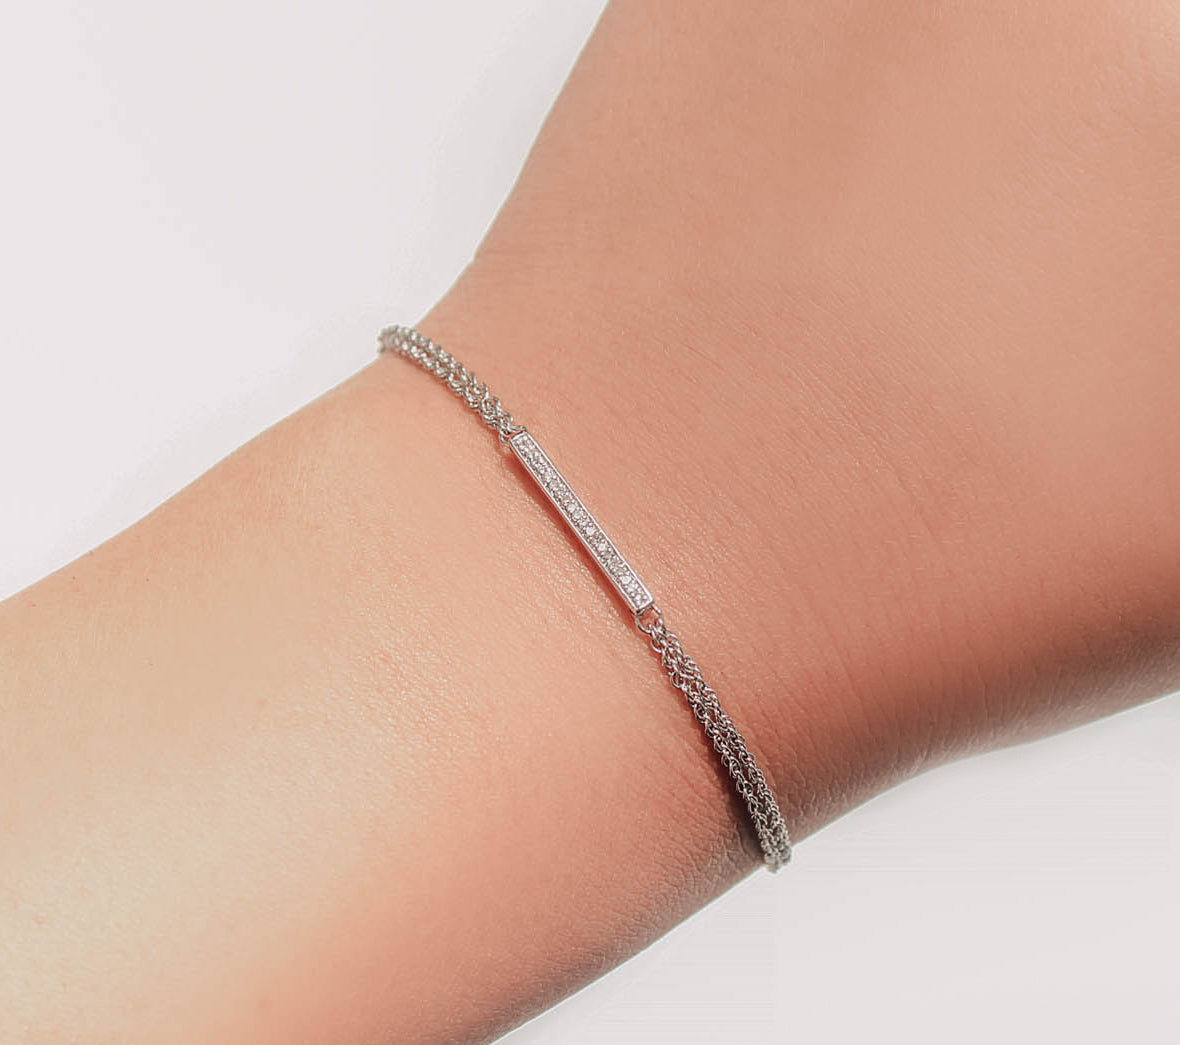 bar and bracelets original for womens jewellery notonthehighstreet bangle bracelet com women personalised sale birthstone bangles